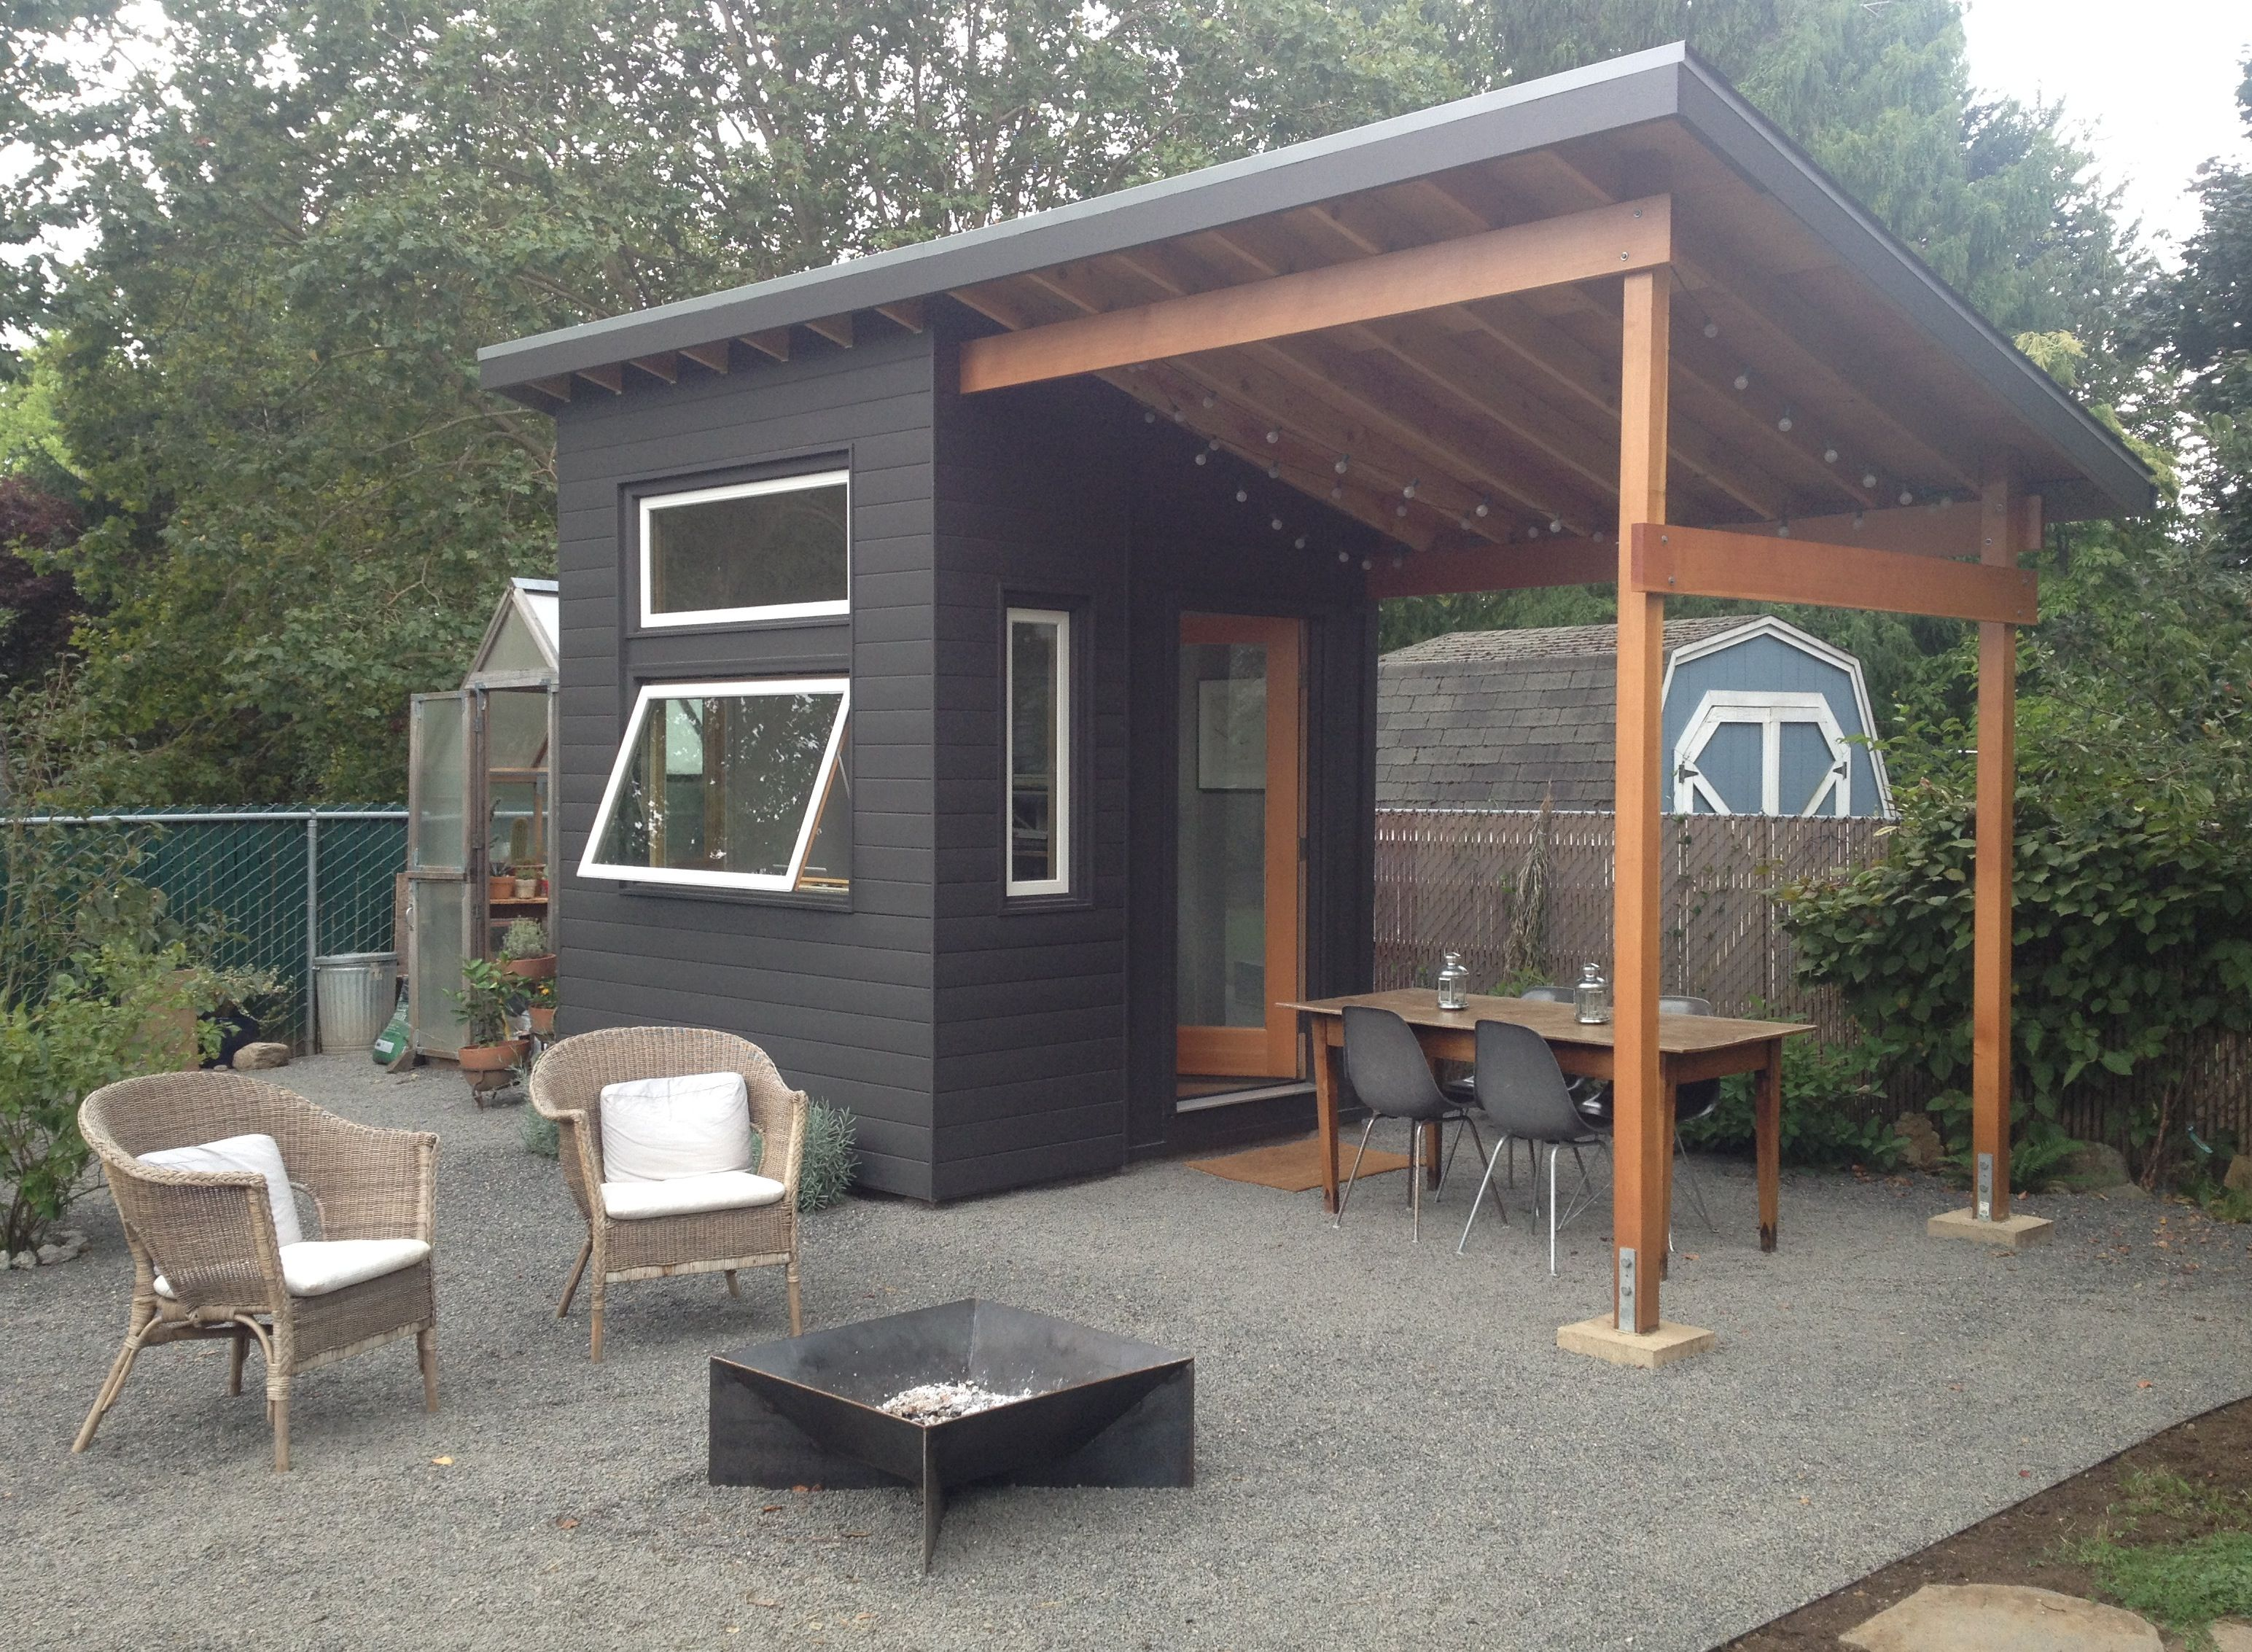 This shed from Costco costs $1000 00 and is 10 x 7 5 The patio is